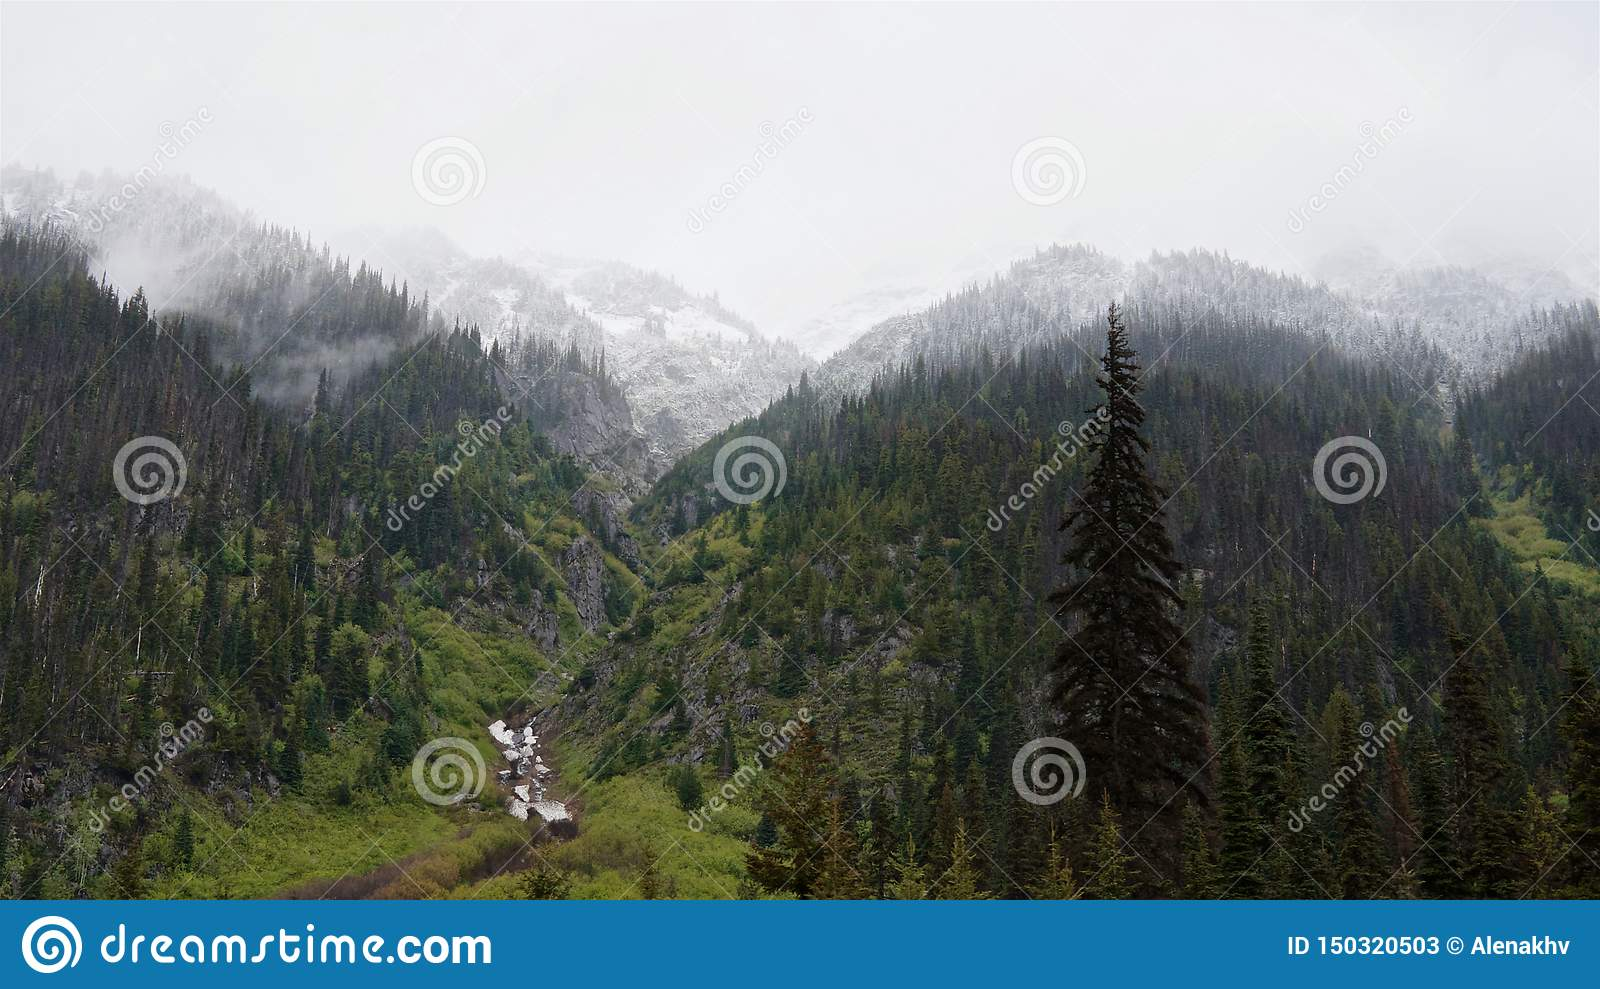 The snow-capped peaks of forest mountains and green grass on the banks of the stream